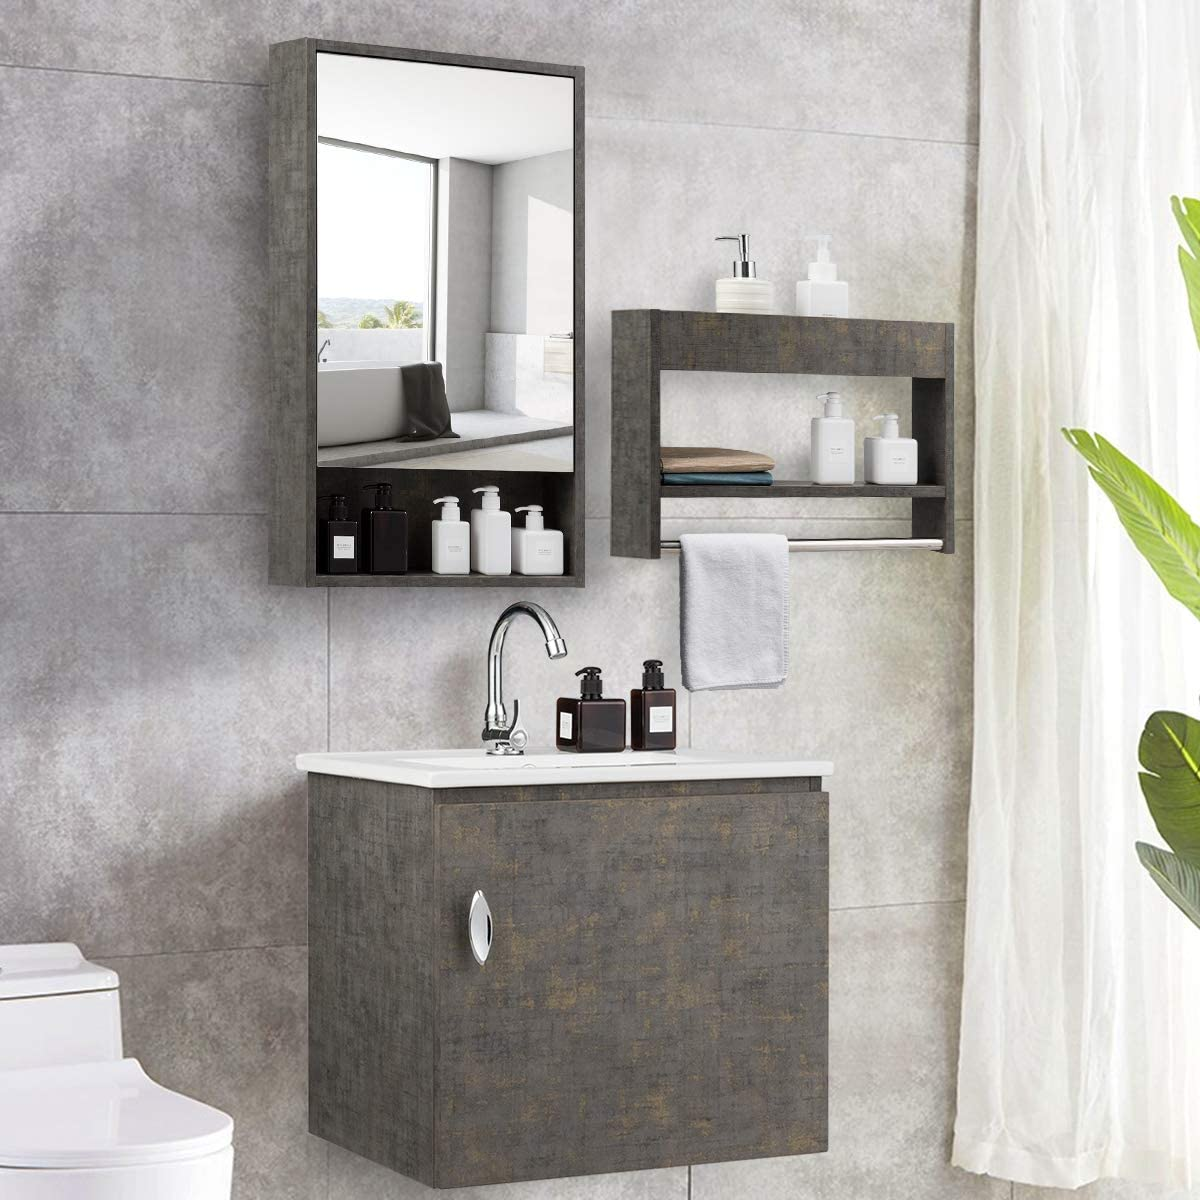 Amazon Com Tangkula Wall Mounted Bathroom Vanity Set Modern Bathroom Vanity Sink Set Storage Cabinet Combinations With Mirror Door Mirror Cabinet Side Storage Rack Main Cabinet Grey Faucet Not Included Kitchen Dining